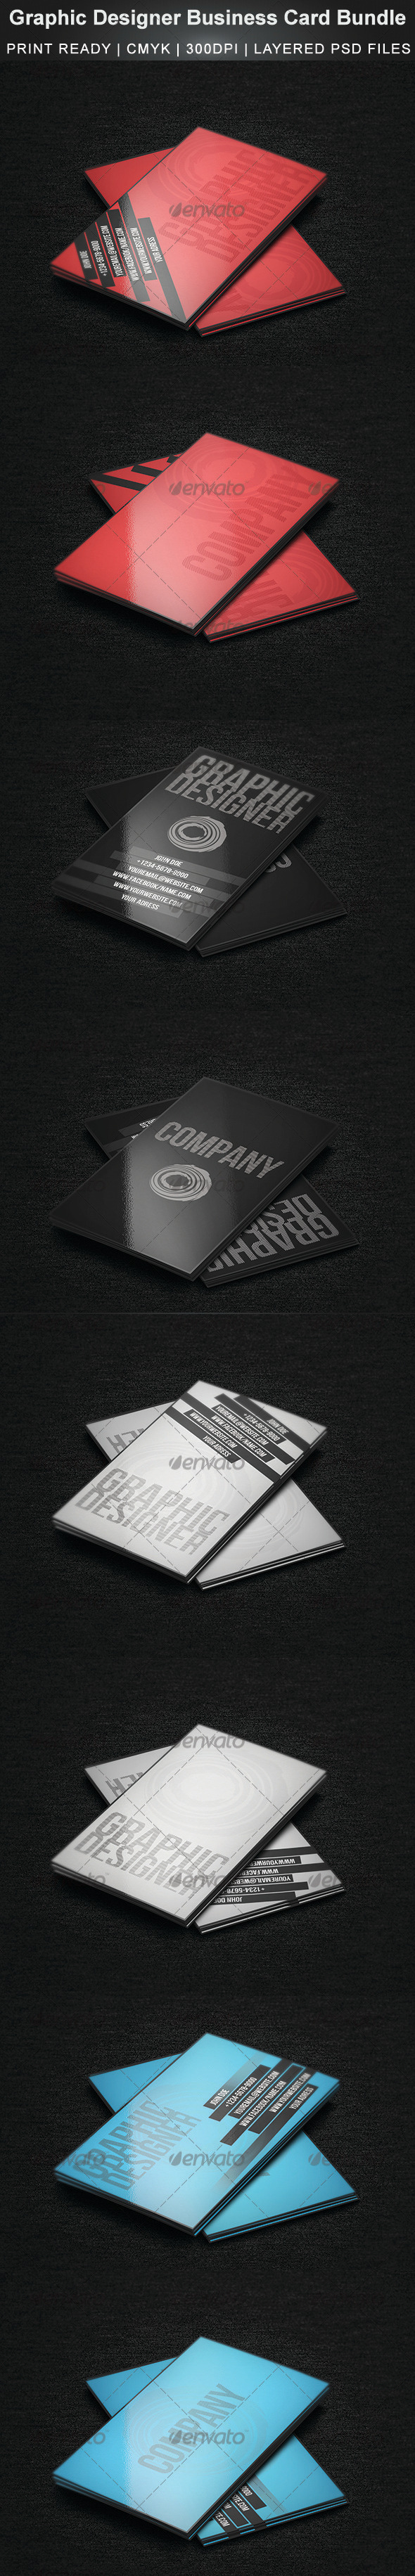 GraphicRiver Graphic Designer Business Card Bundle 3575624